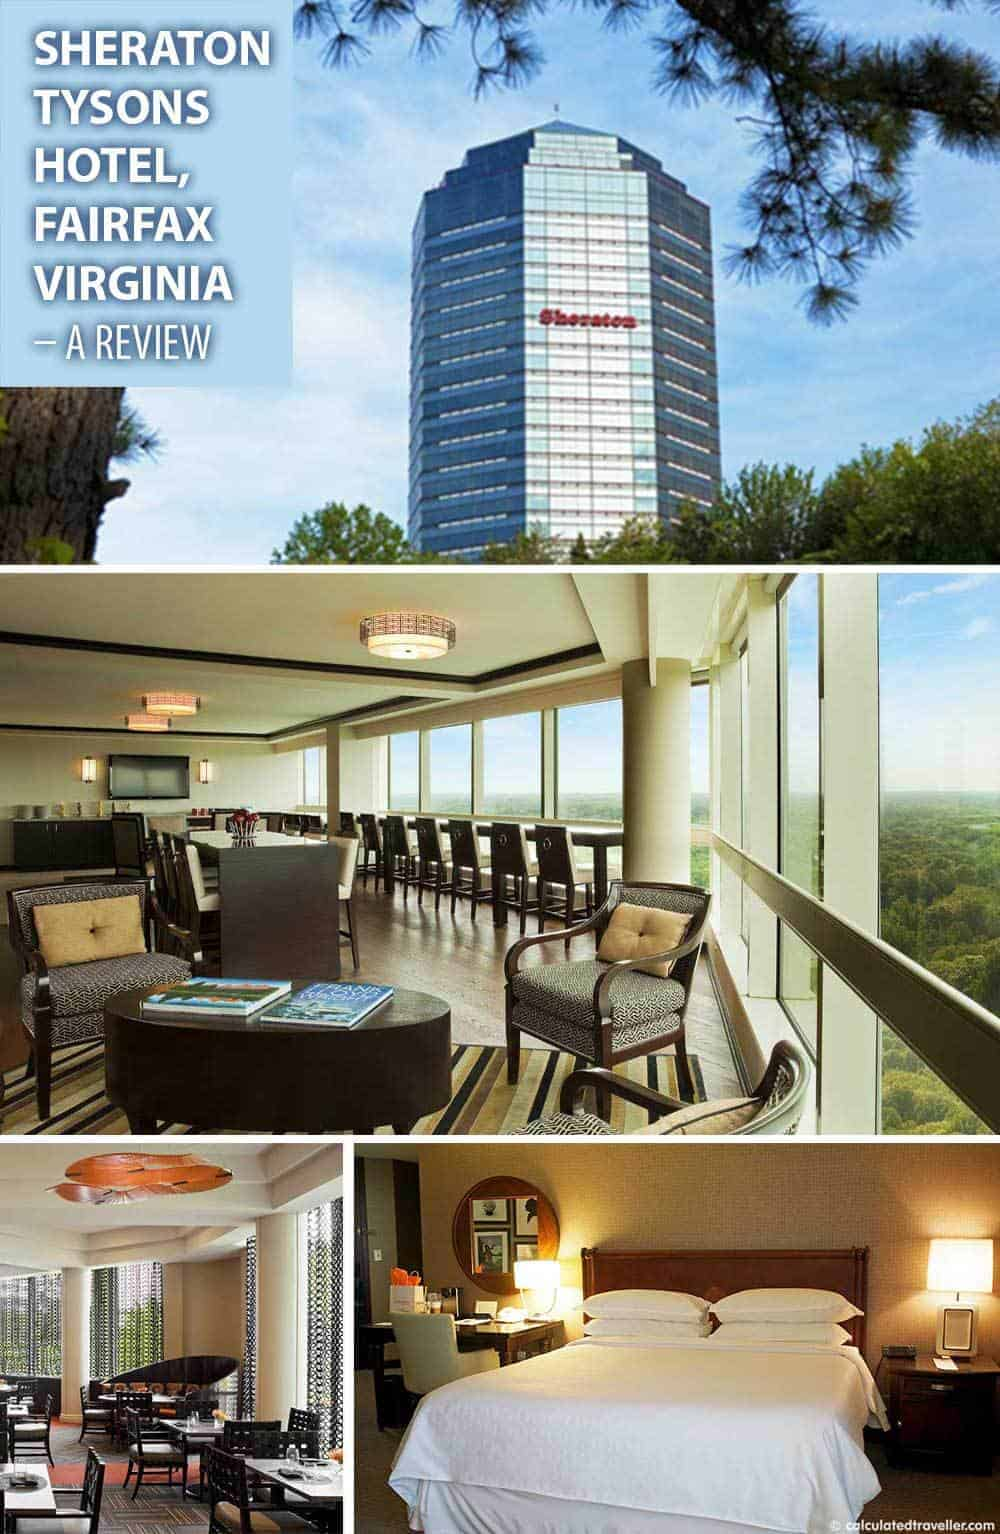 Sleepy Nights at Sheraton Tysons Hotel in Fairfax Virginia - A review by Calculated Traveller